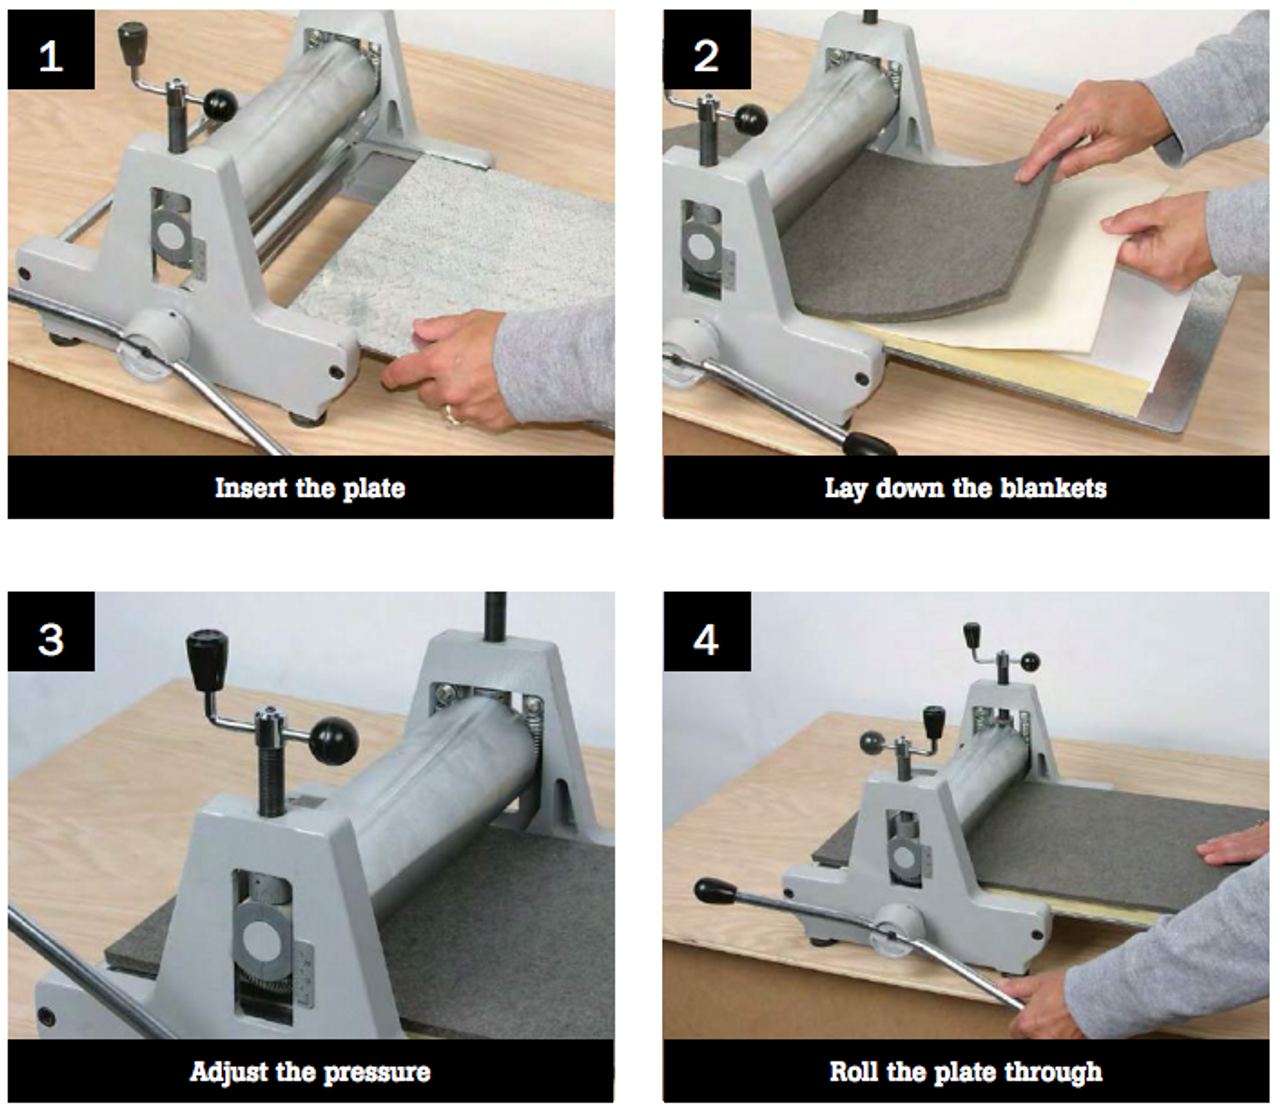 How to use the press